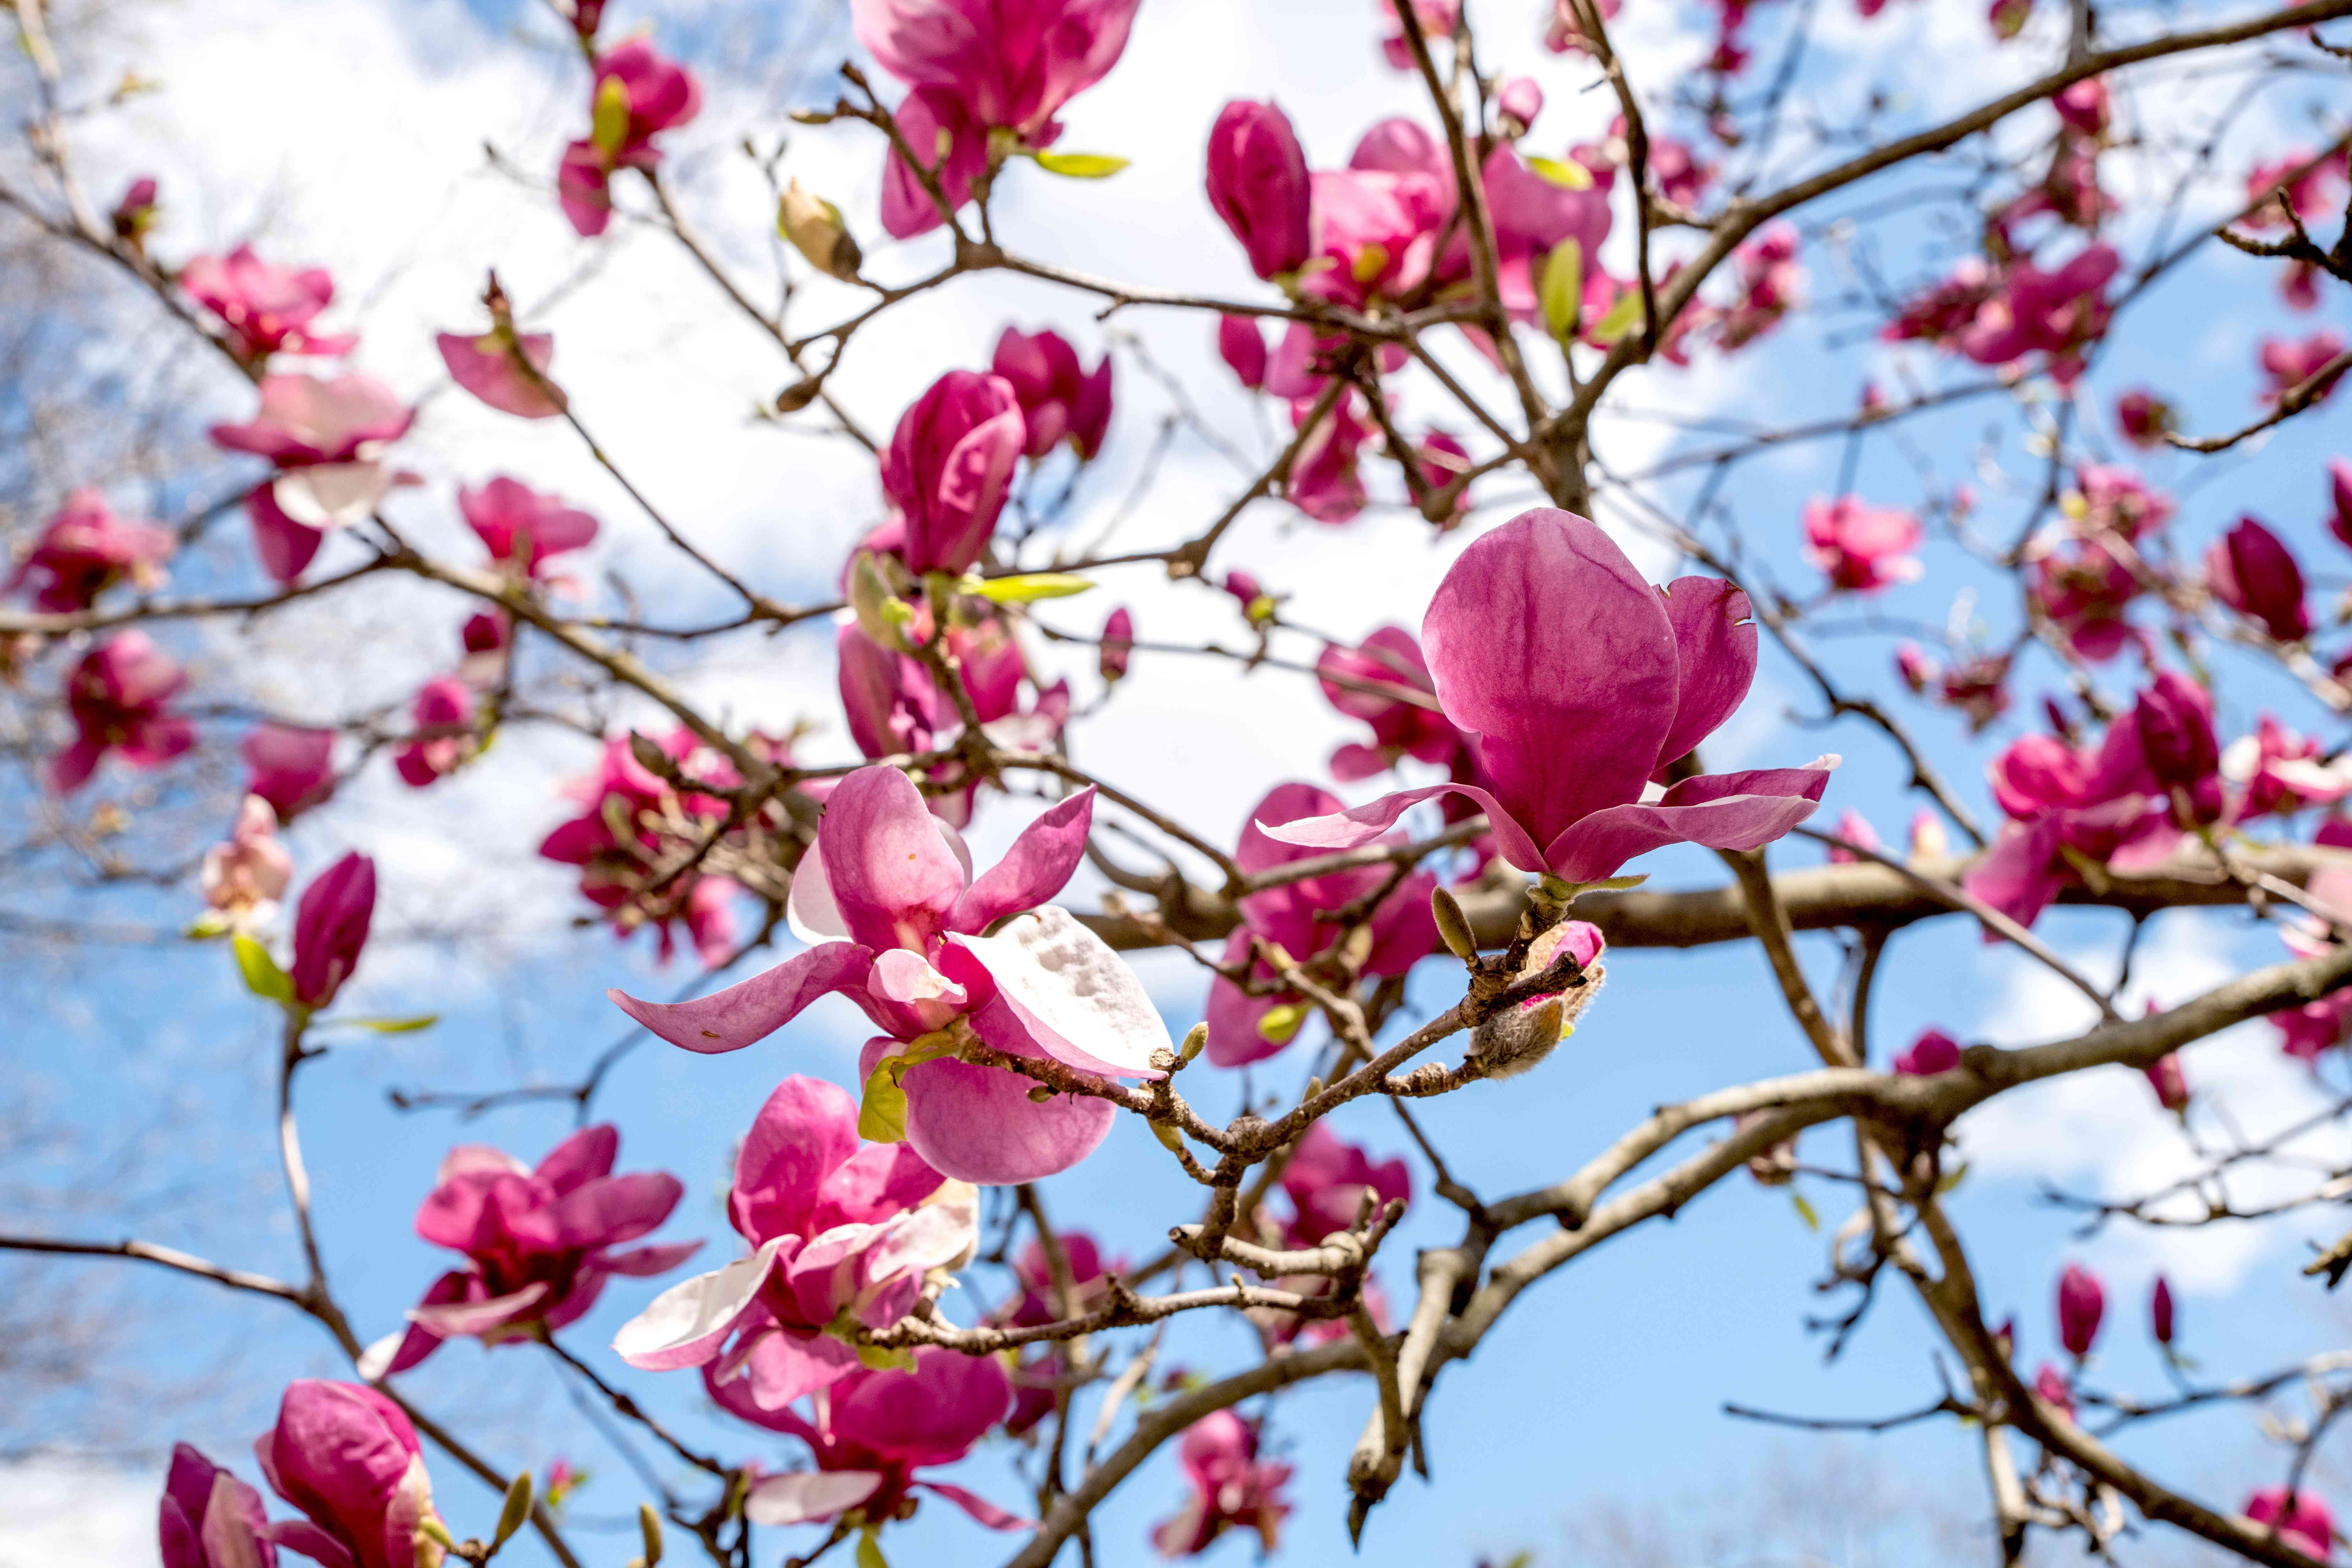 Magnolia 'Jane' shrub branches with large pink and white flowers and buds